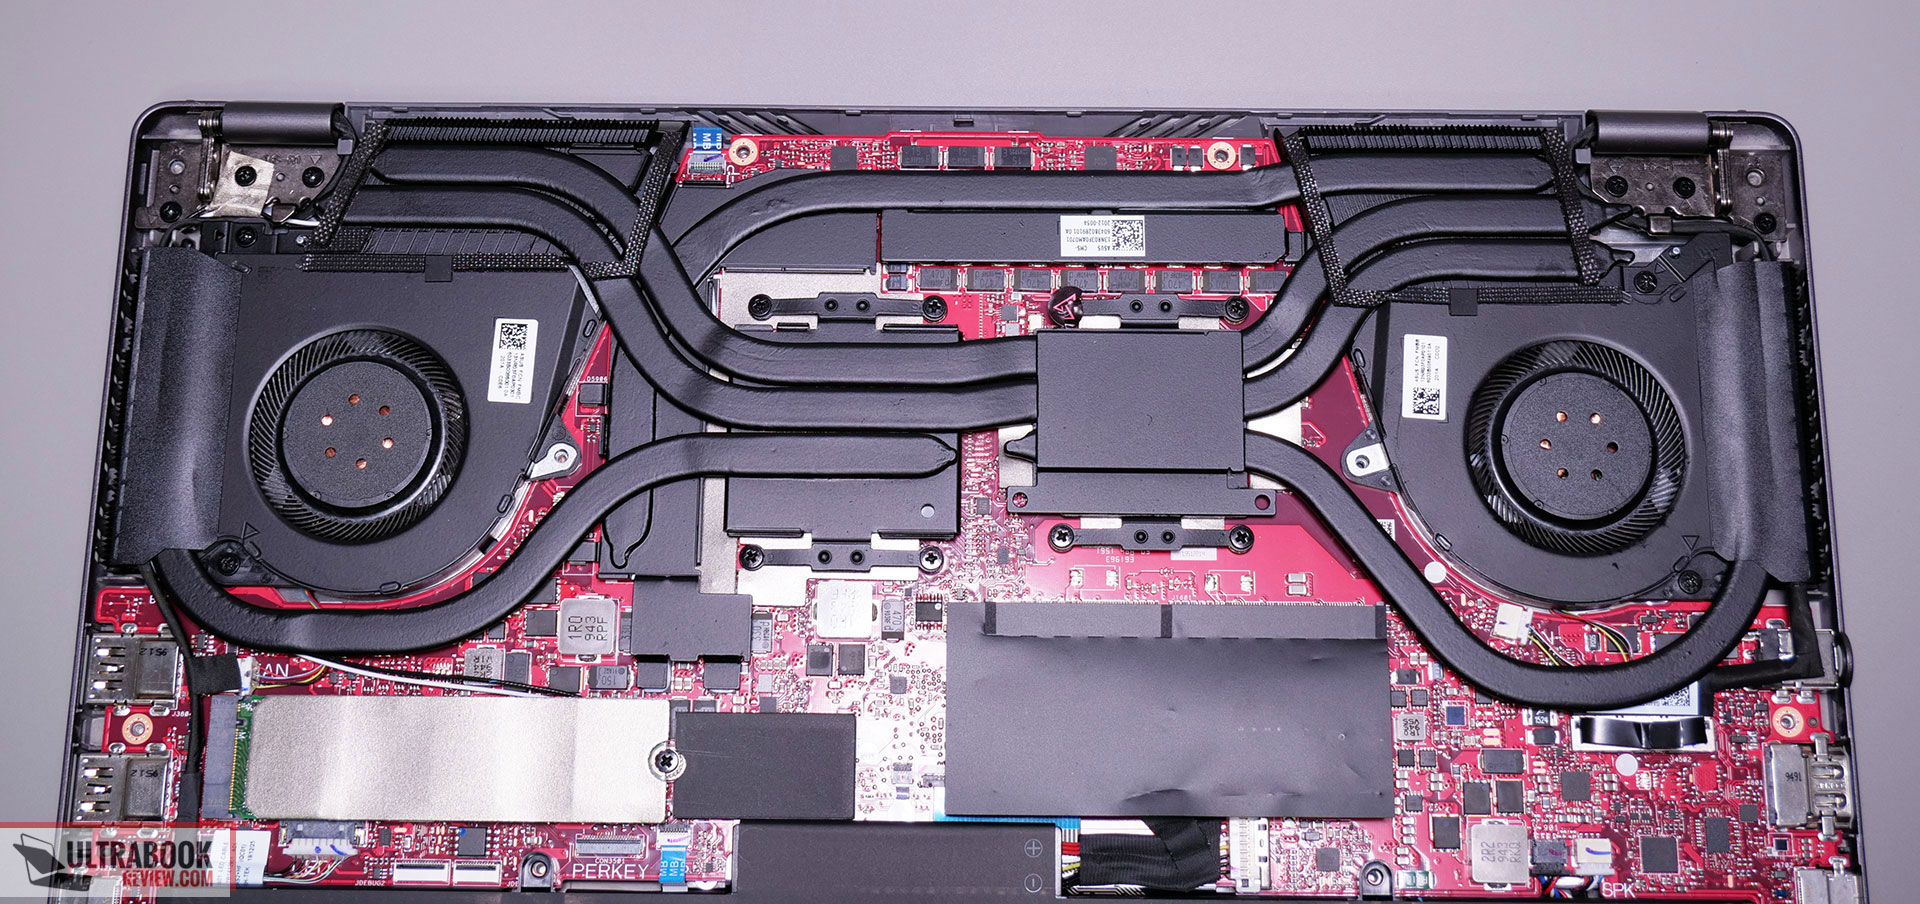 Asus ROG Zephyrus G14 GA401IV - thermal module and cooling